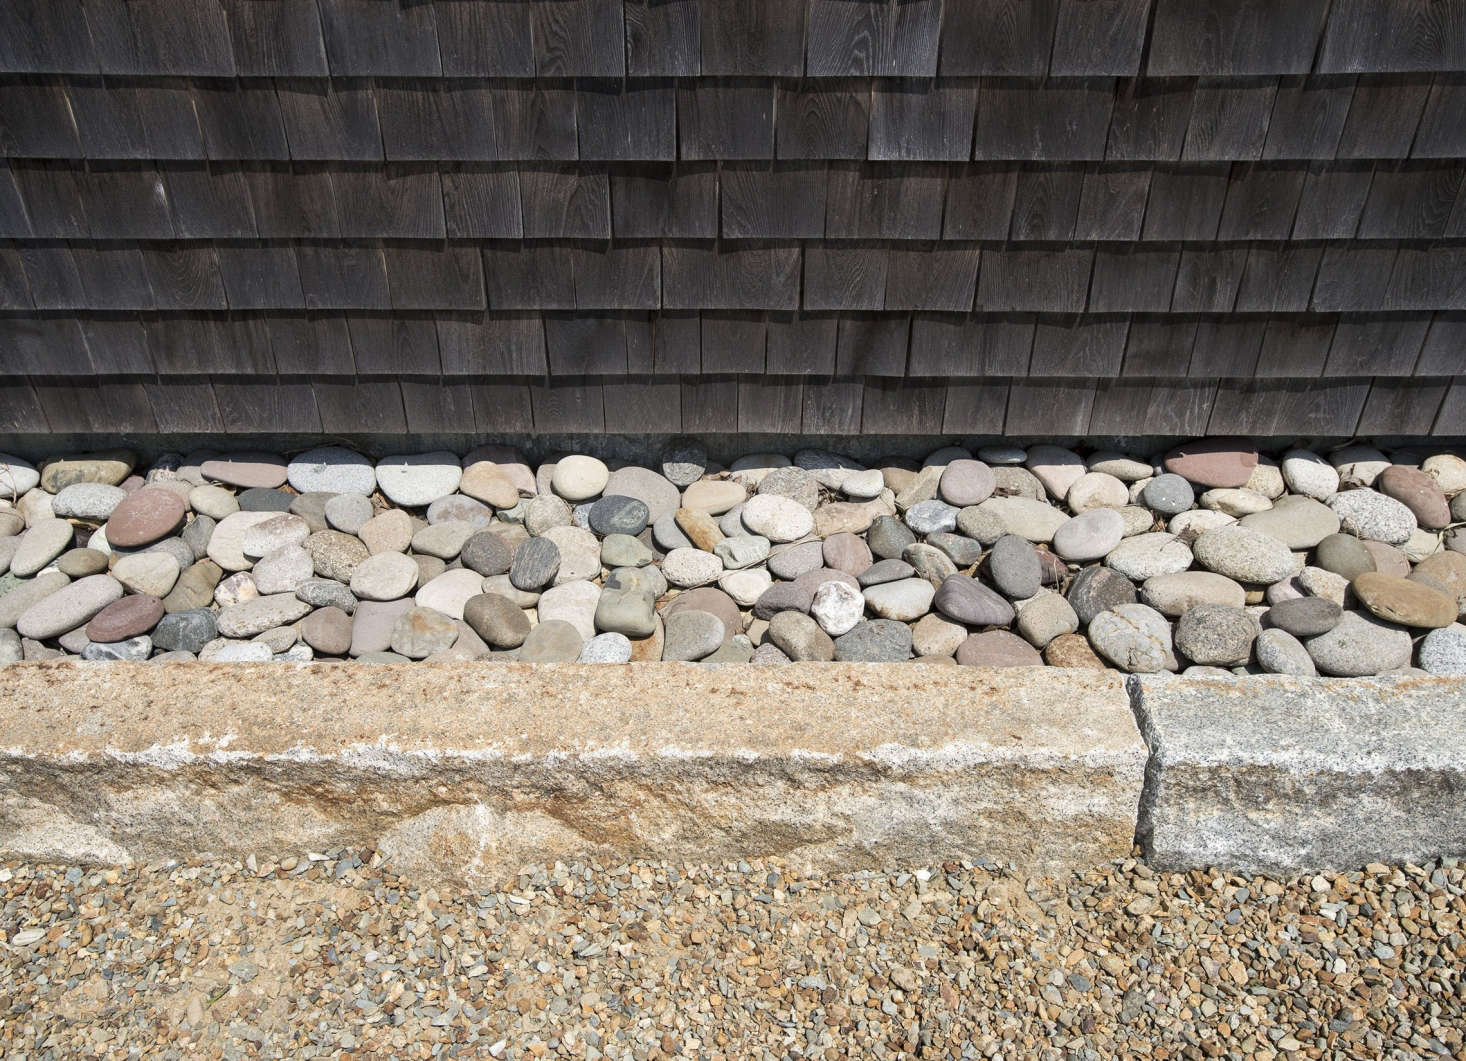 Drainage done right; a French drain system sloughs water away fromthe building&#8